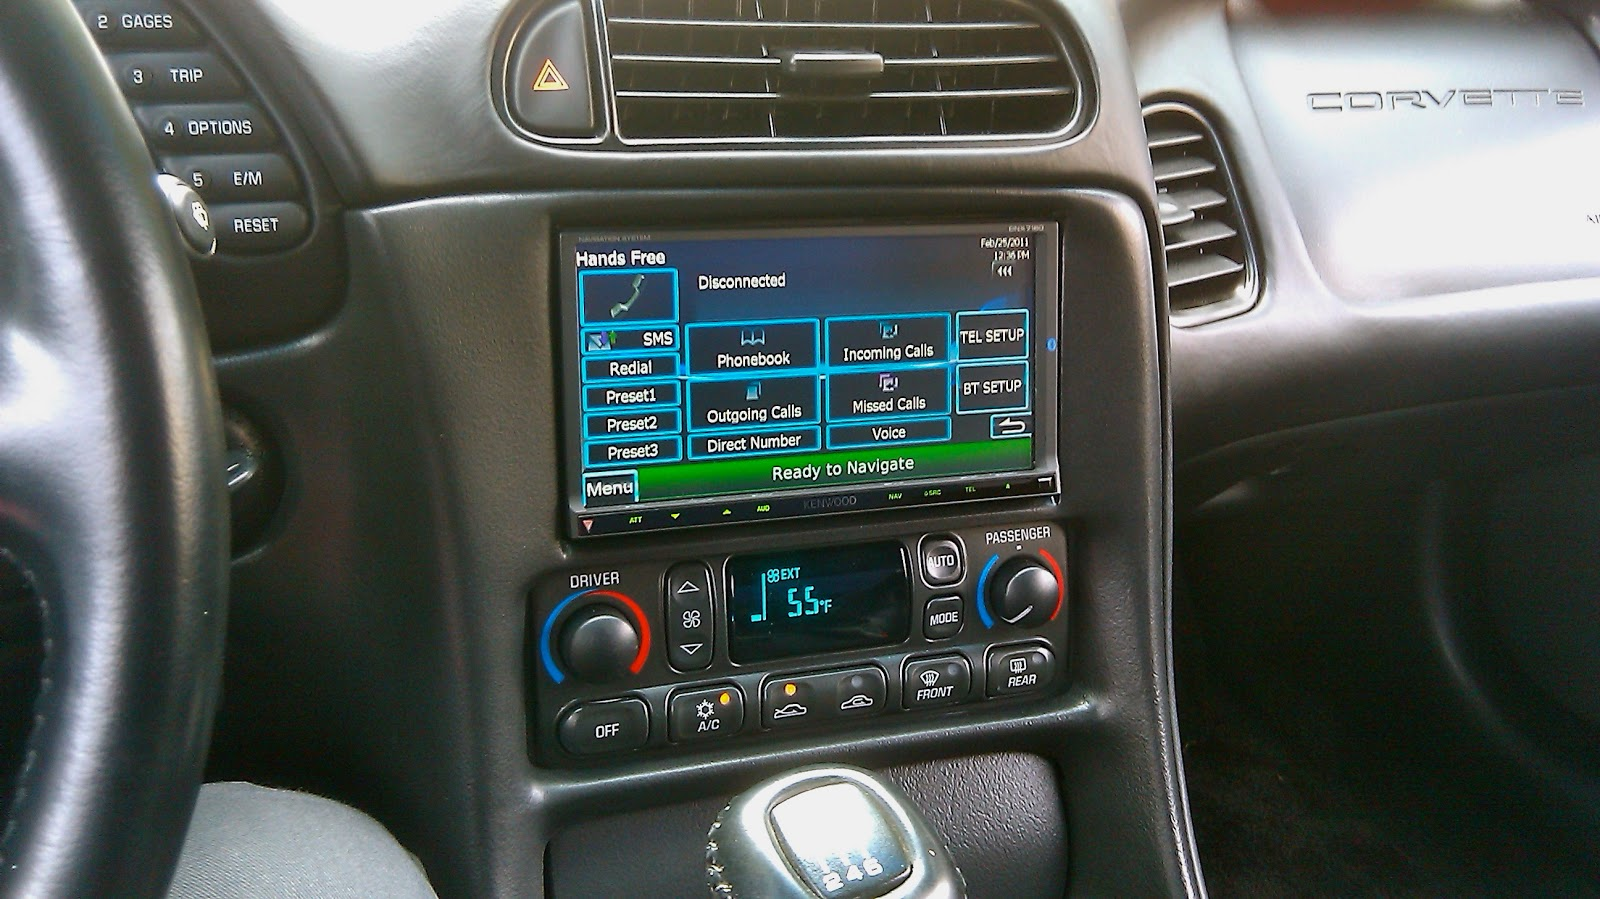 84200 How To Upgrade Sound System 4 further B006c2tnna besides Bmw 1 Series Review 2015 118i 120i 125i And M135i Brilliant Still The Benchmark together with 21697 besides 21697. on 2011 toyota prius aftermarket stereo